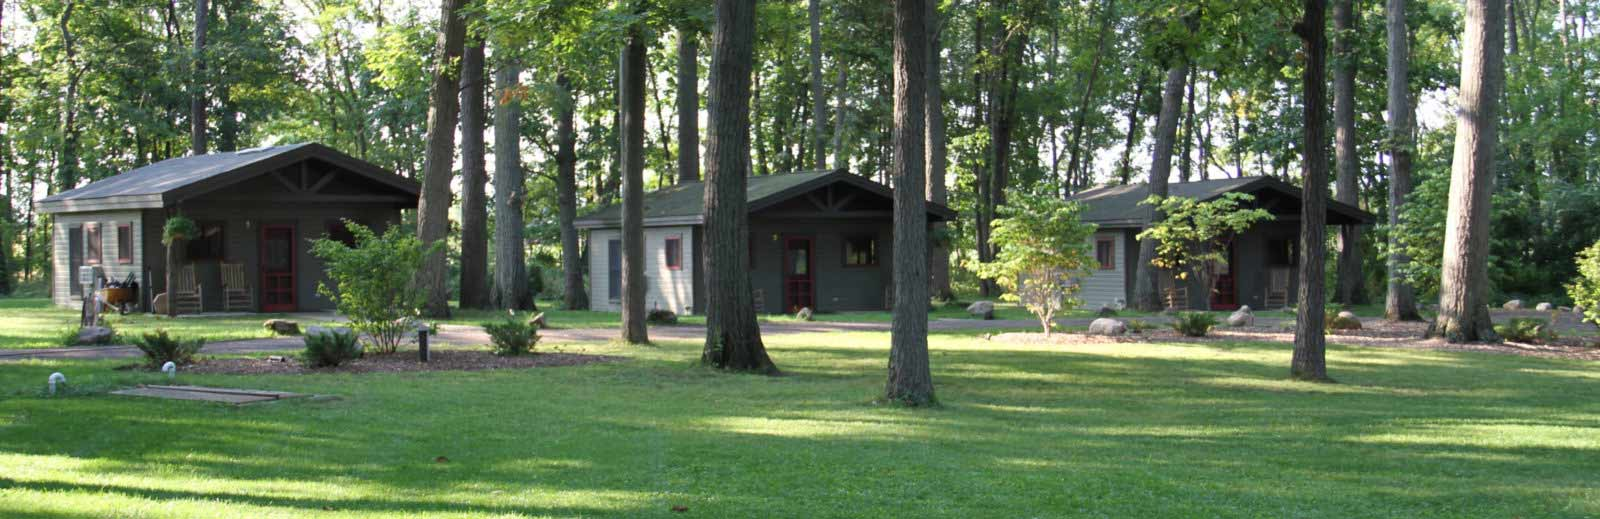 Camp Woodbury cabins